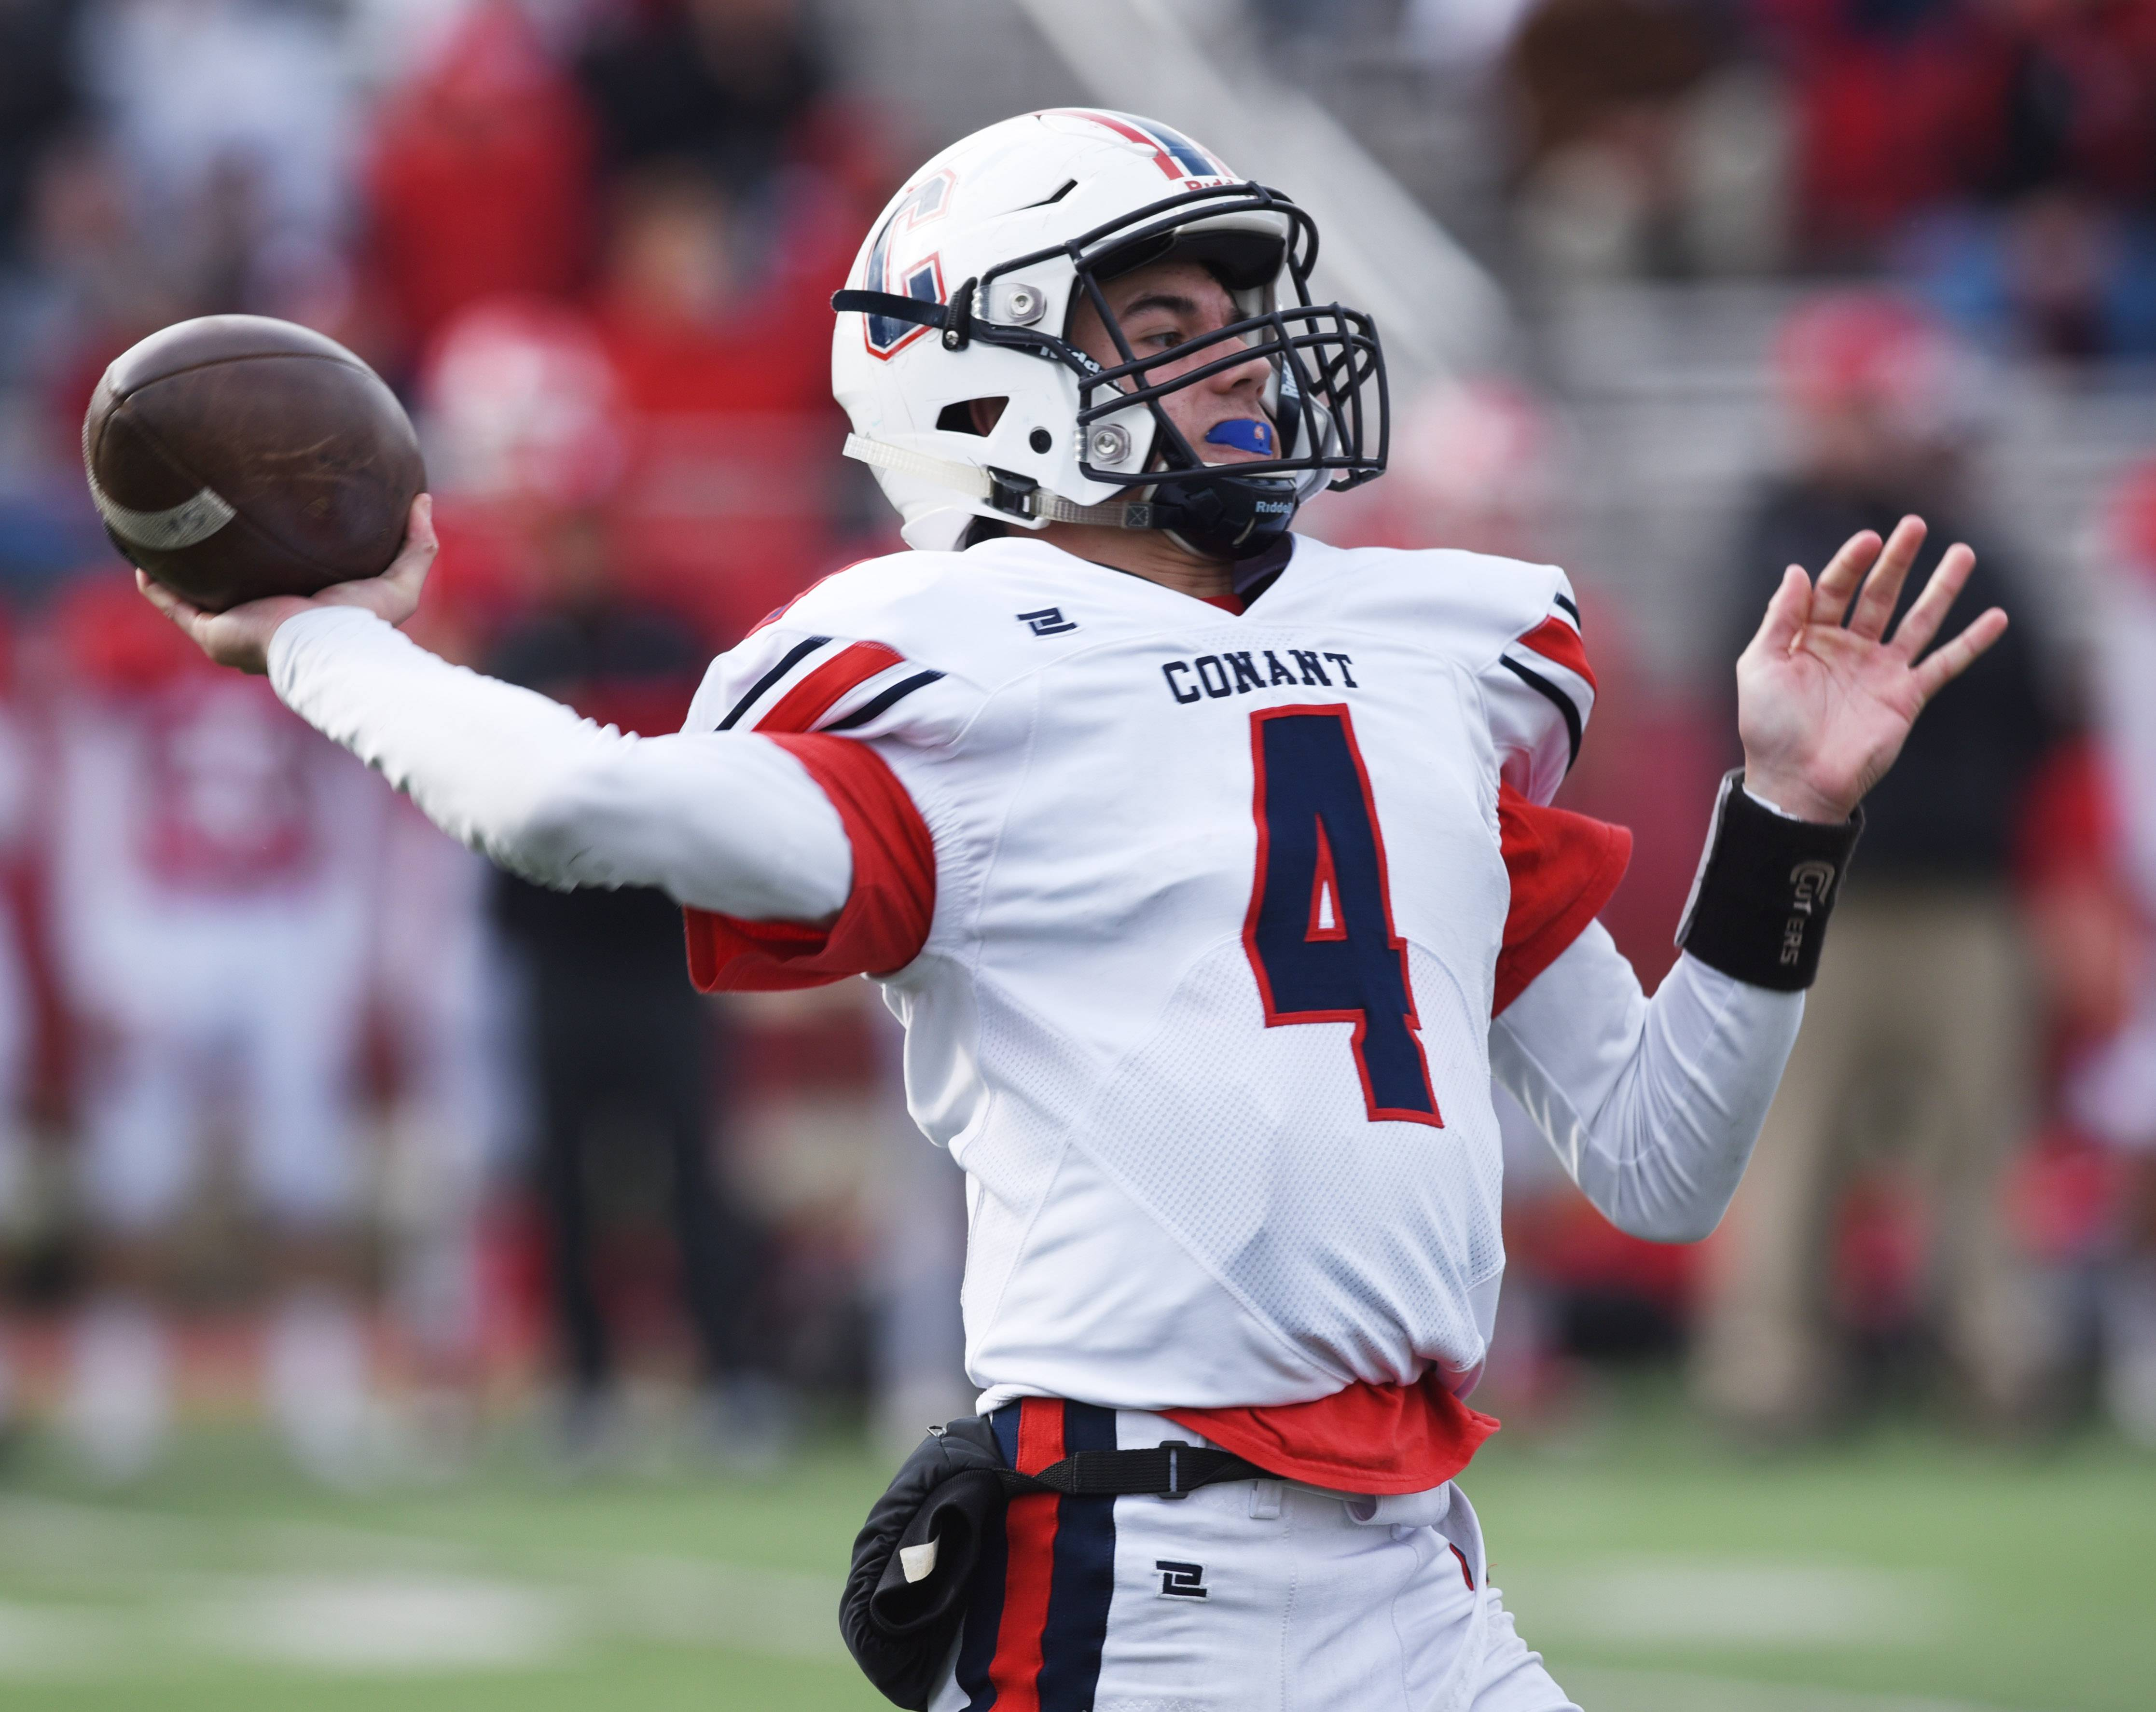 Conant quarterback Kevin Polaski throws a pass during Saturday's Class 8A playoff game in Hinsdale.